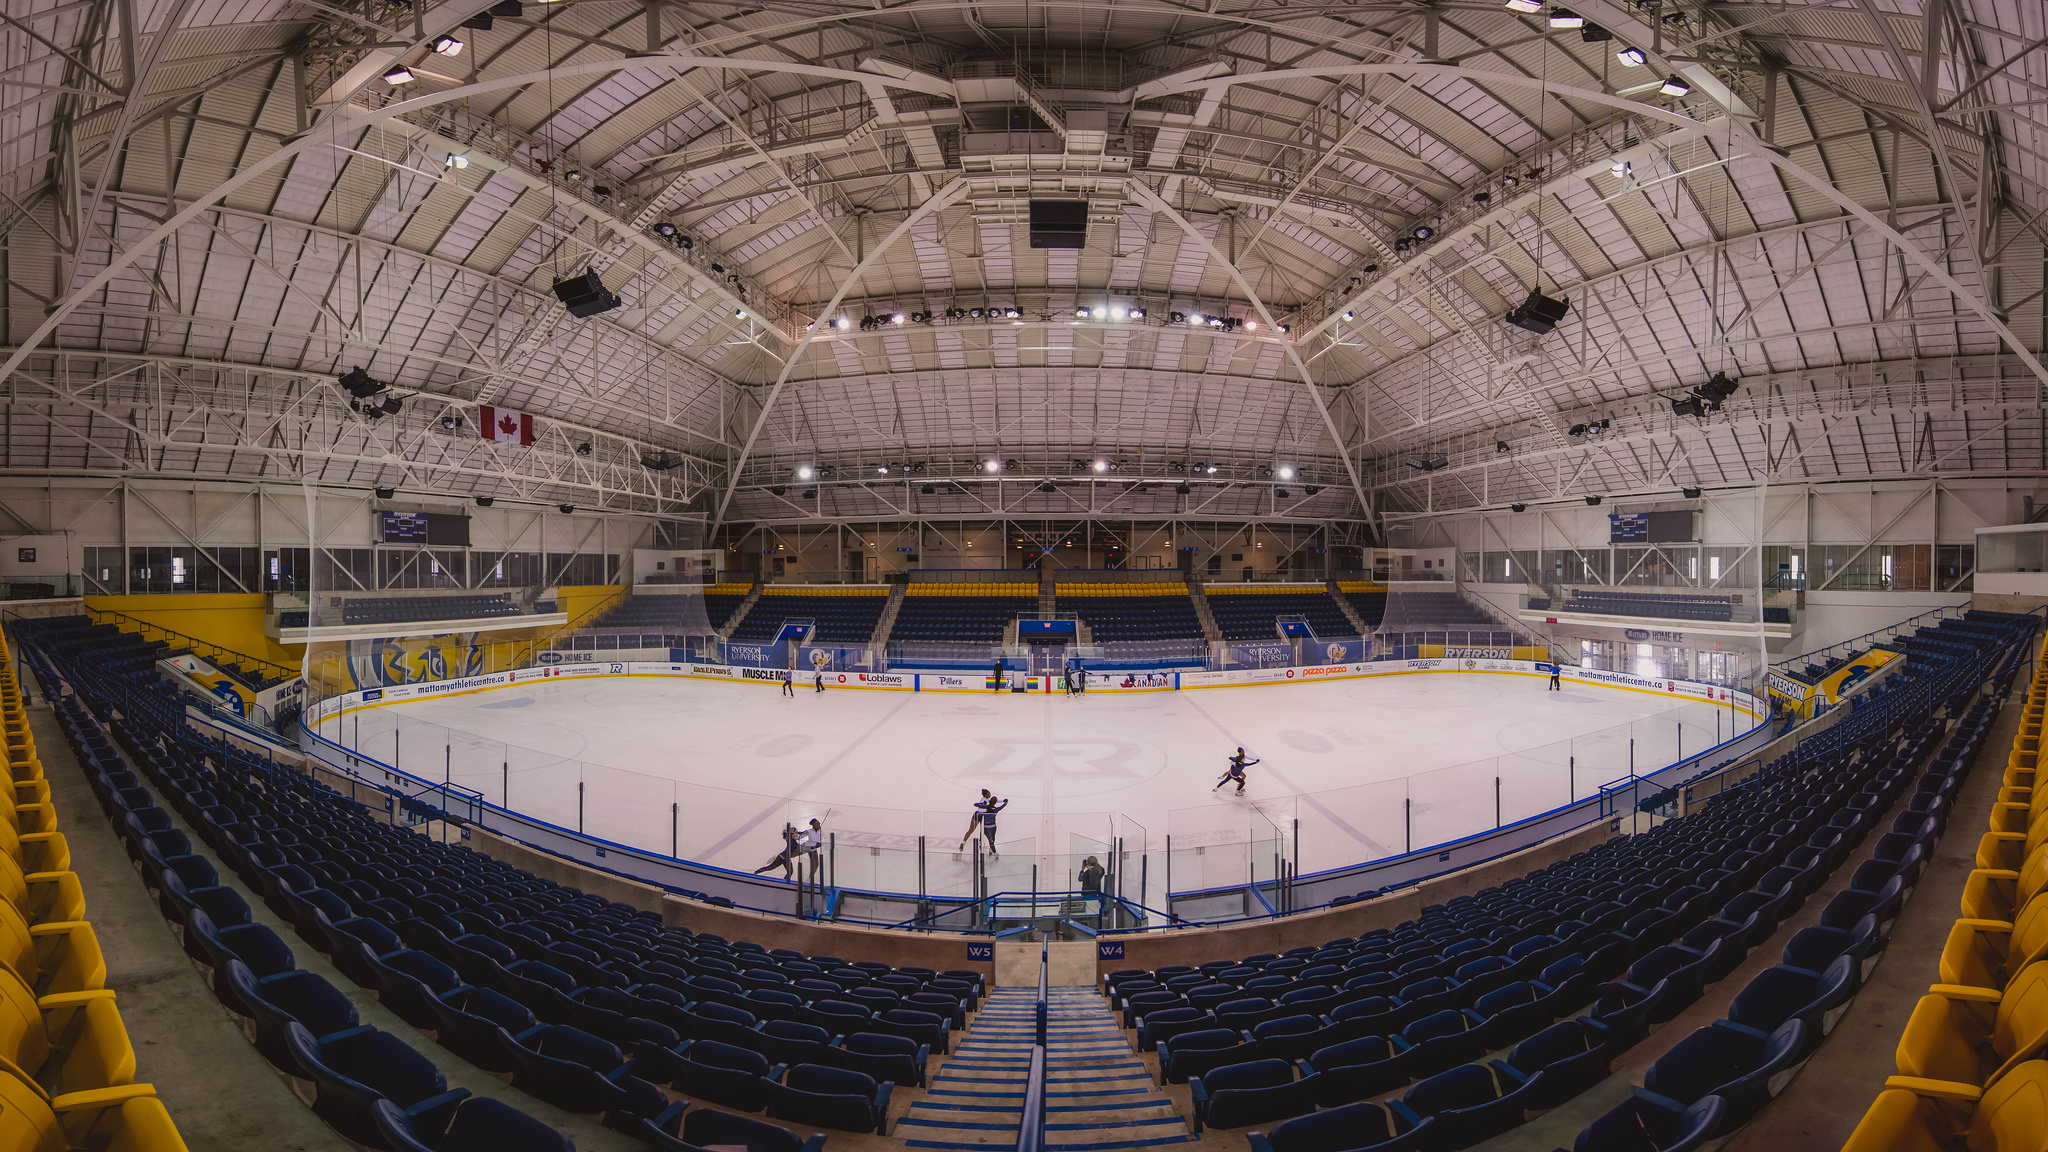 Maple Leaf Gardens (Panorama) (1/250s, f/4, ISO800)